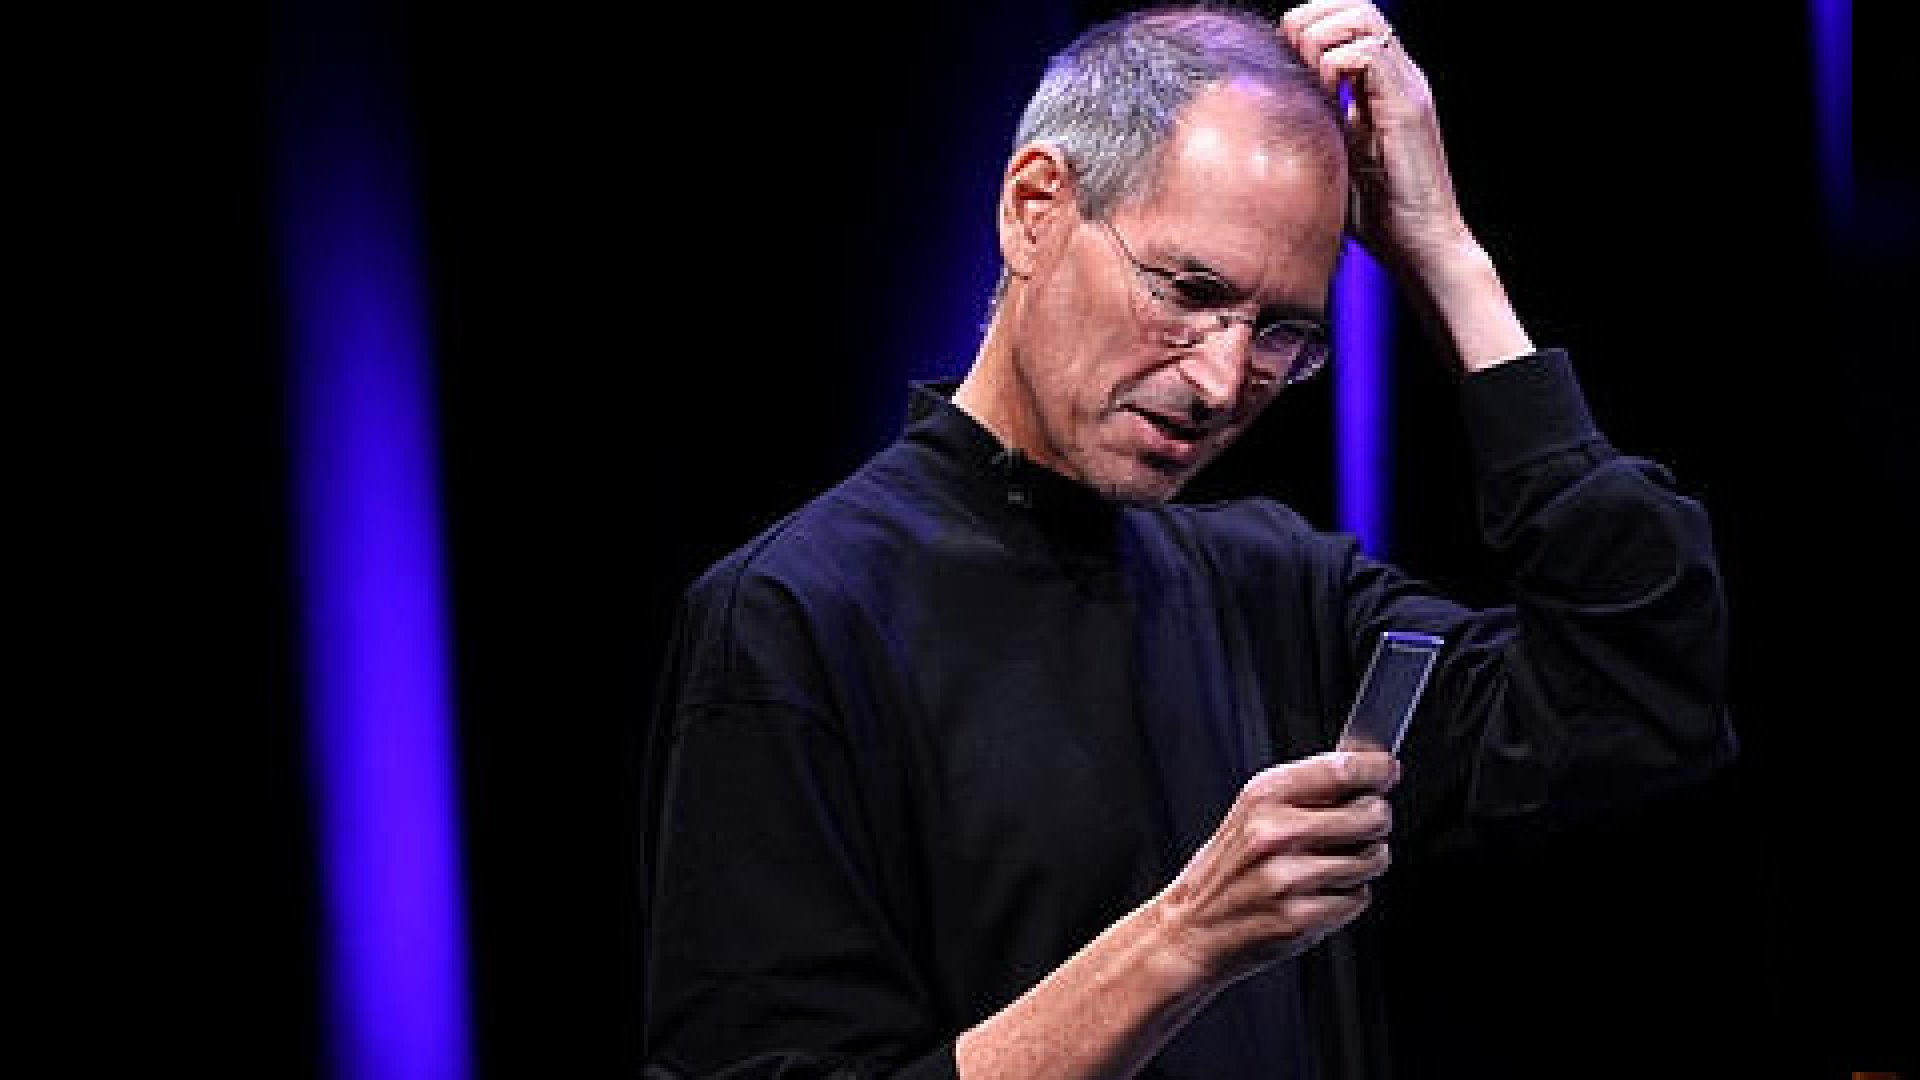 Steve Jobs during a demo of the iPod.